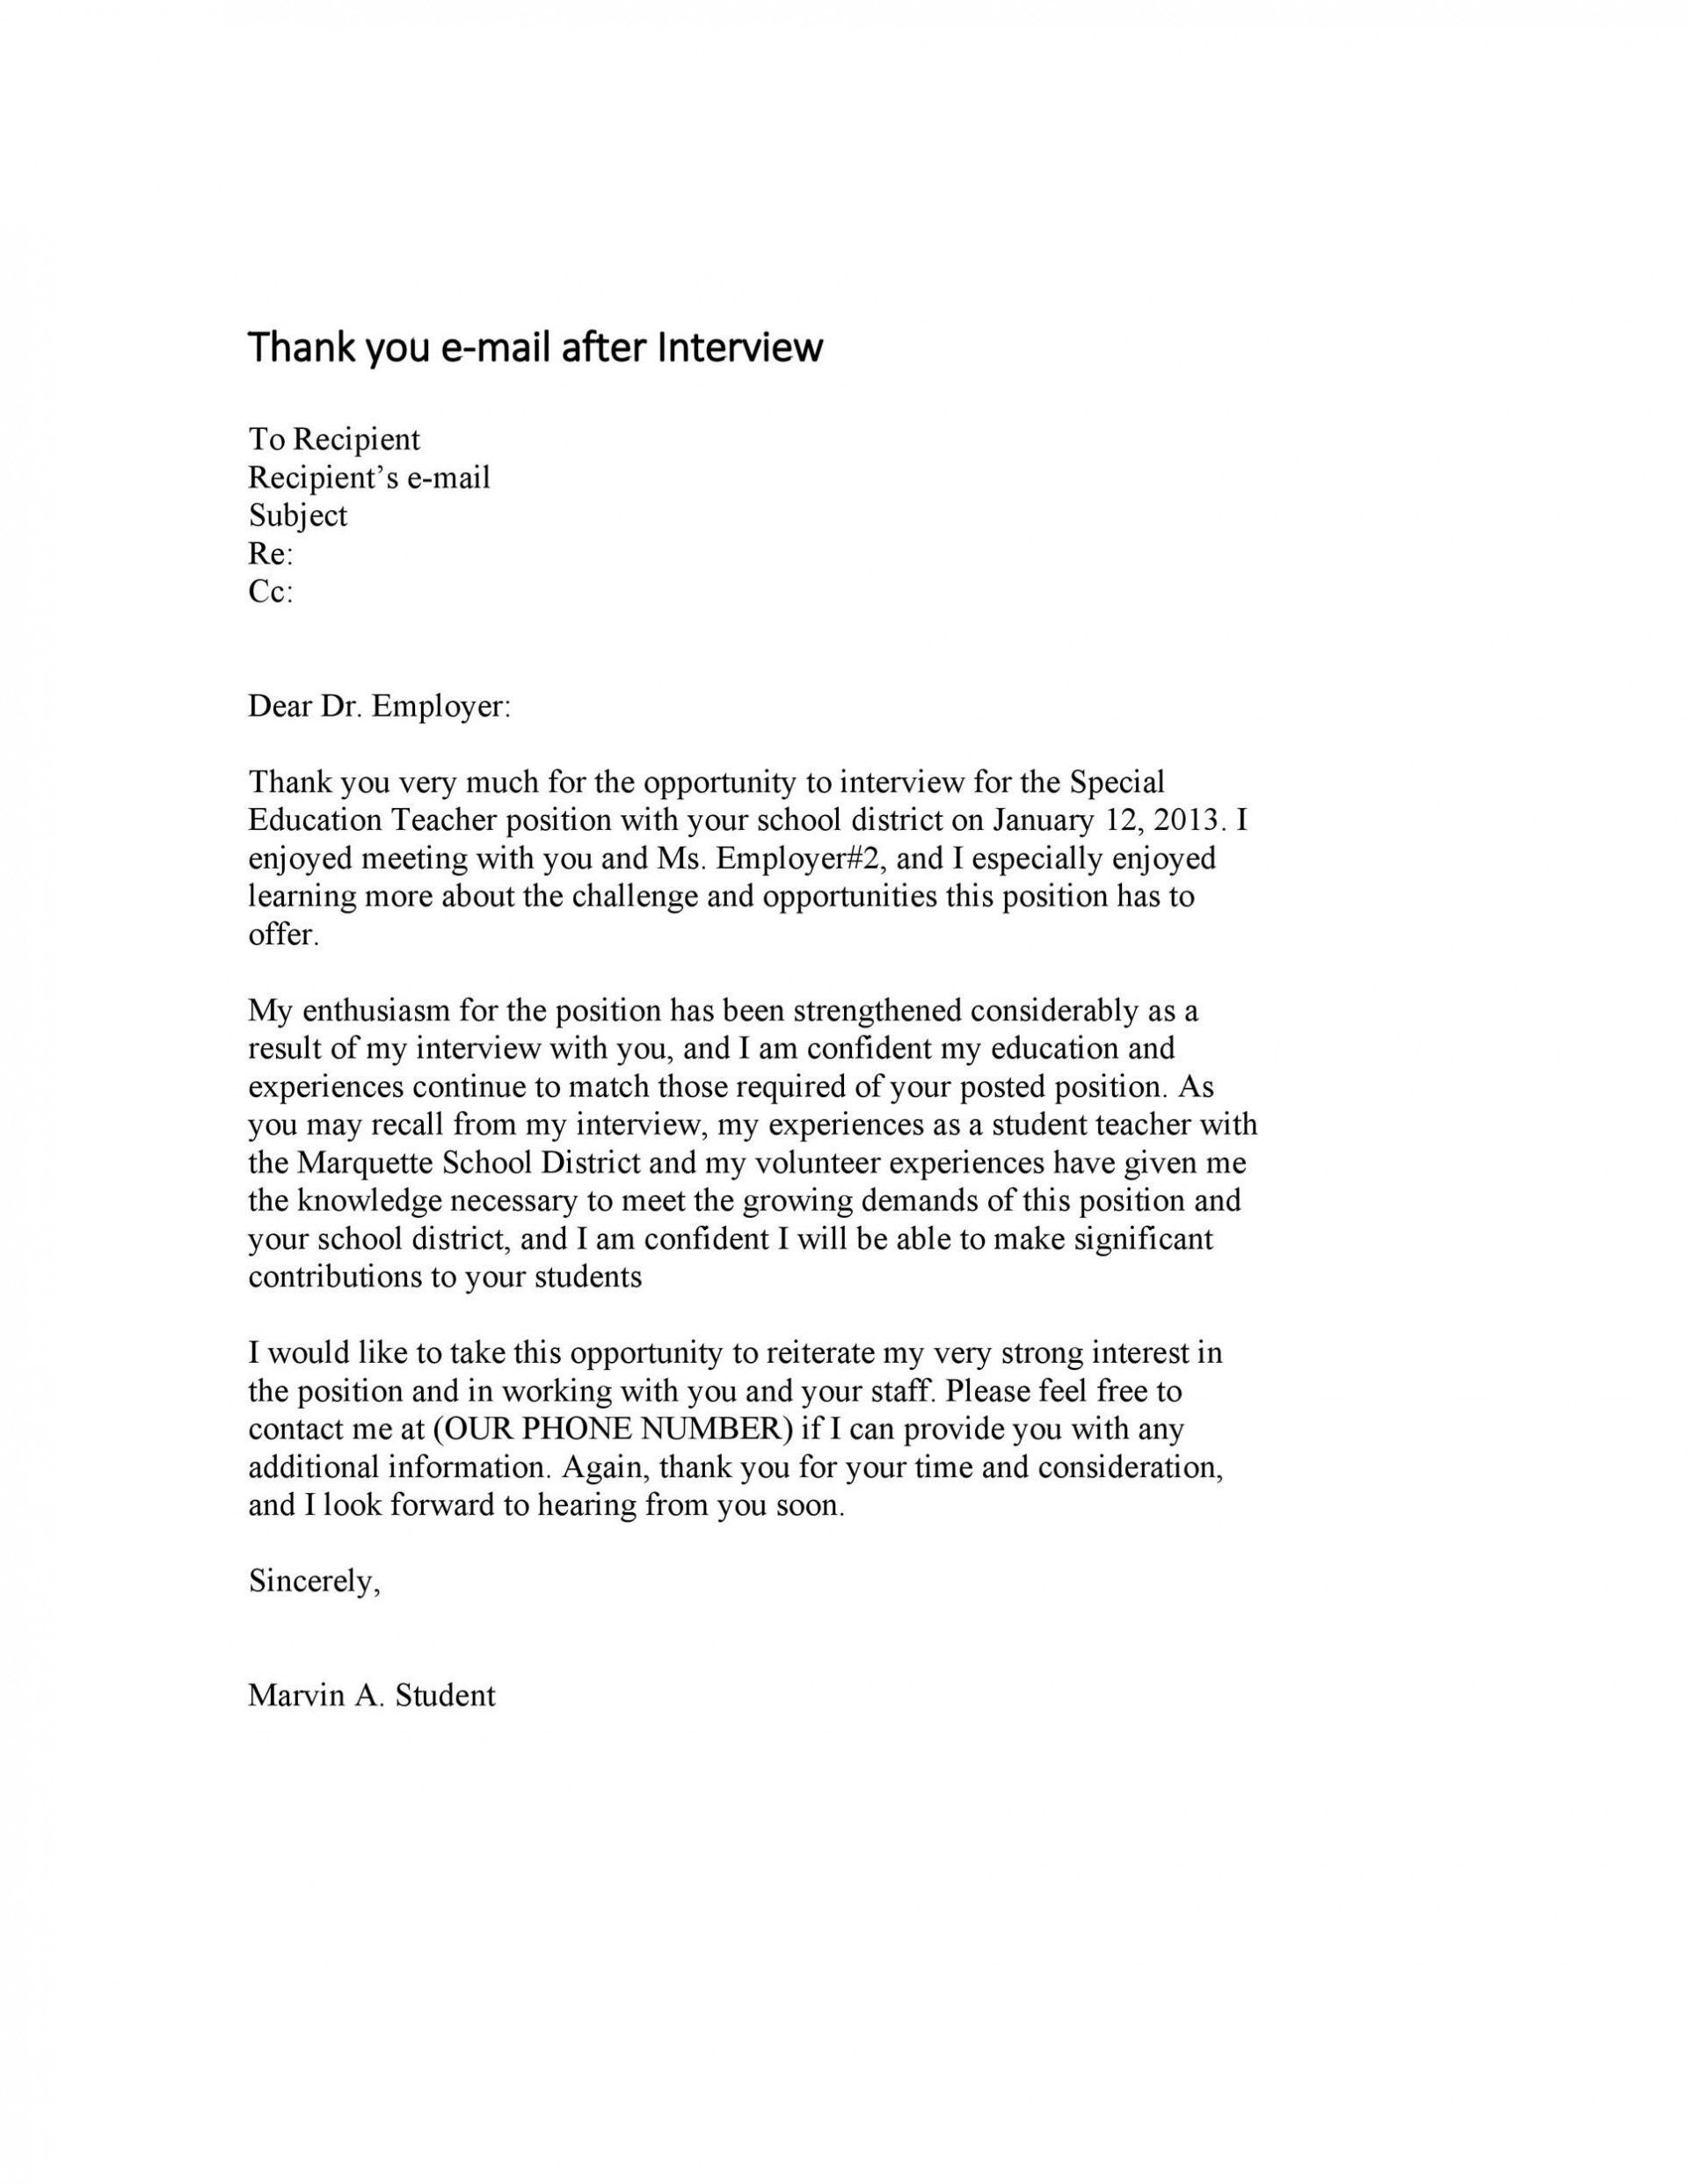 008 Fantastic Thank You Note Template After Phone Interview Image  Sample Letter Example1920